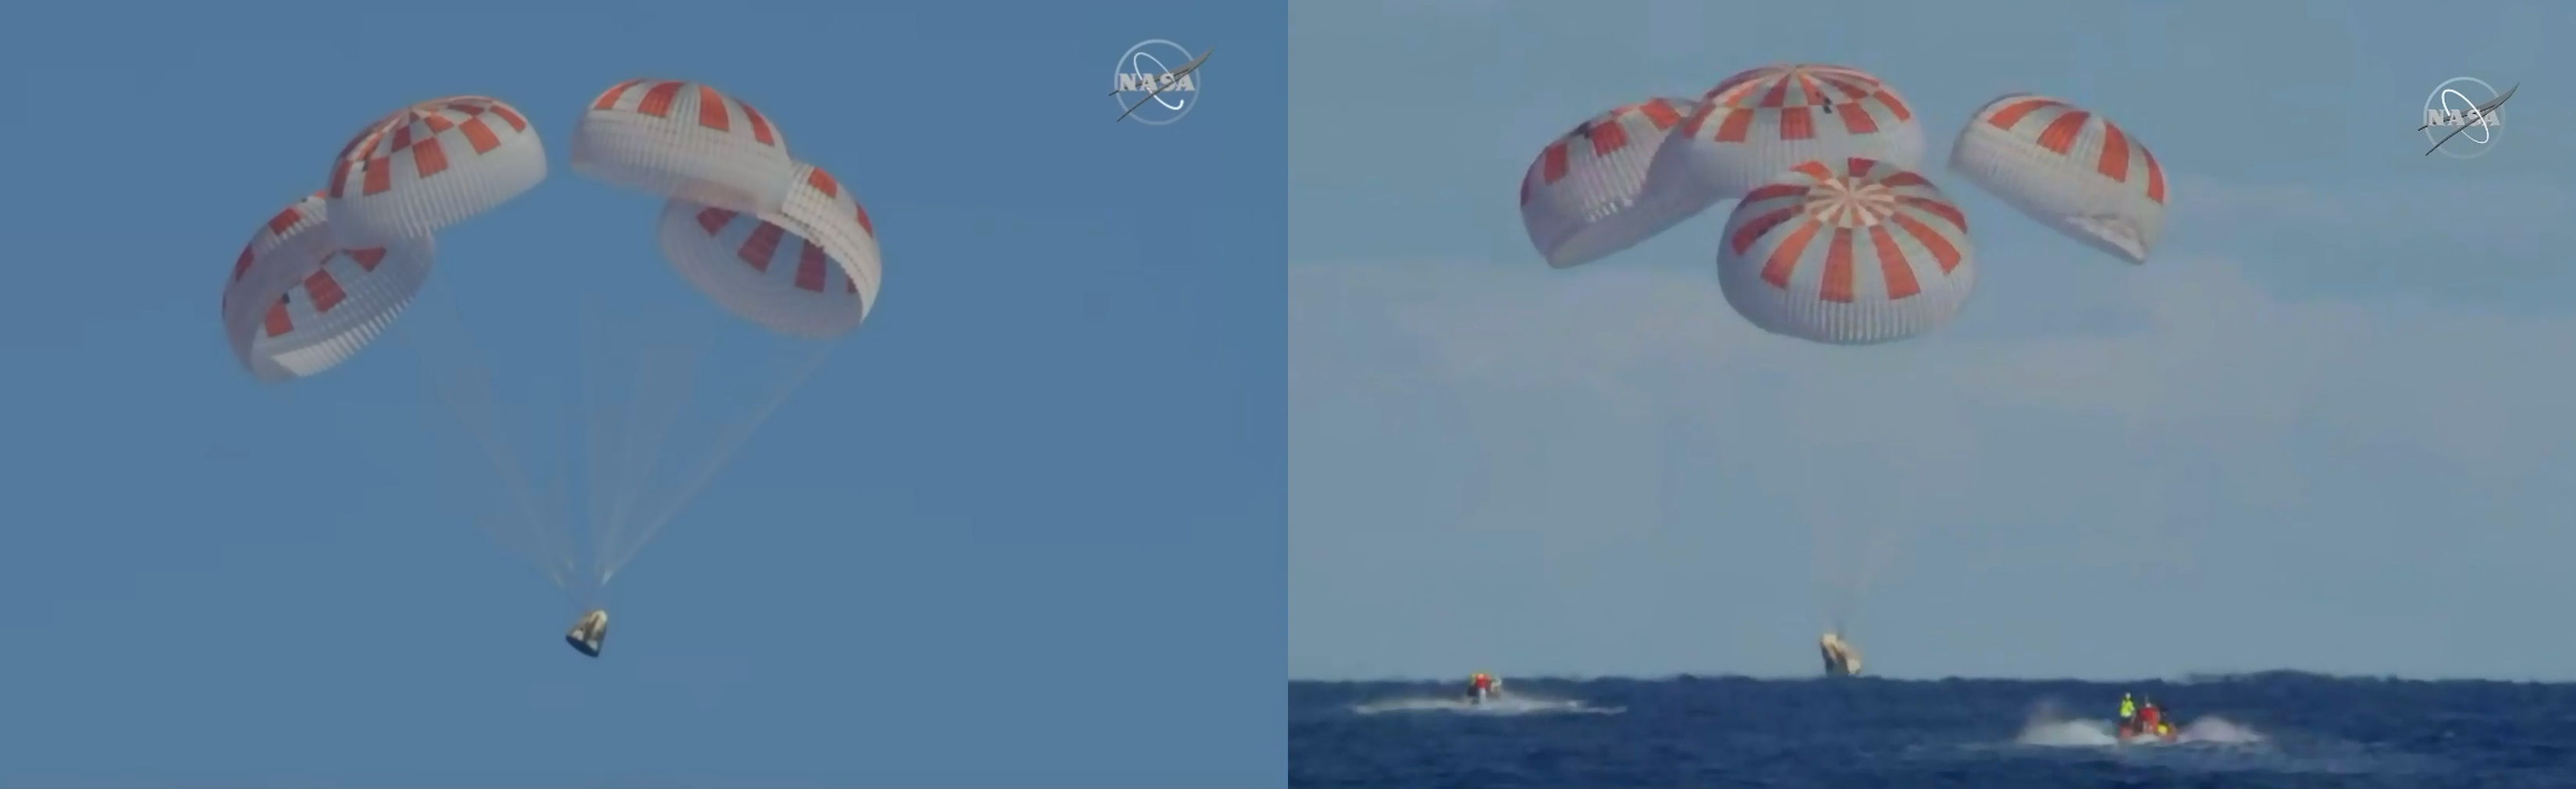 SpaceX Dragon Capsule Splashdown and Recovery